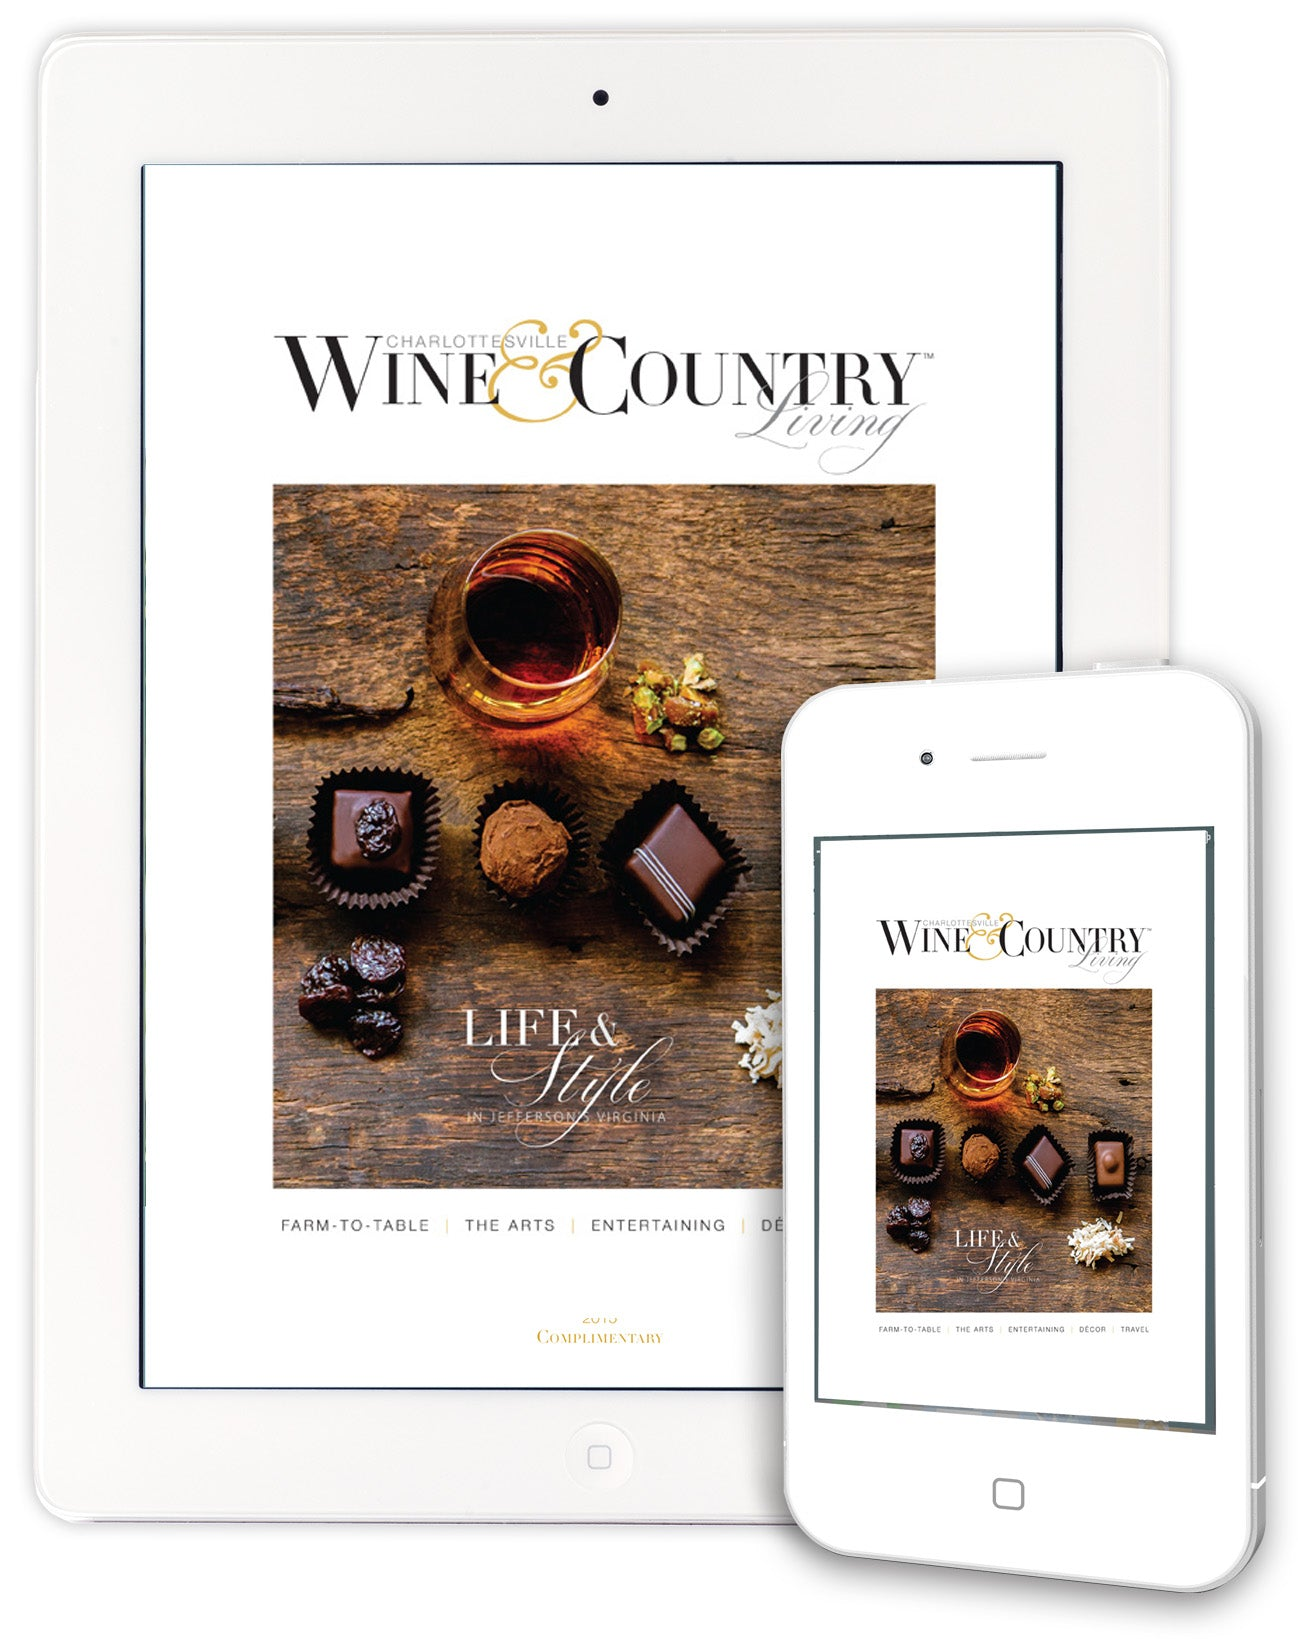 W&C Life Book 3 - Fall 2016 DIGITAL - SINGLE ISSUE